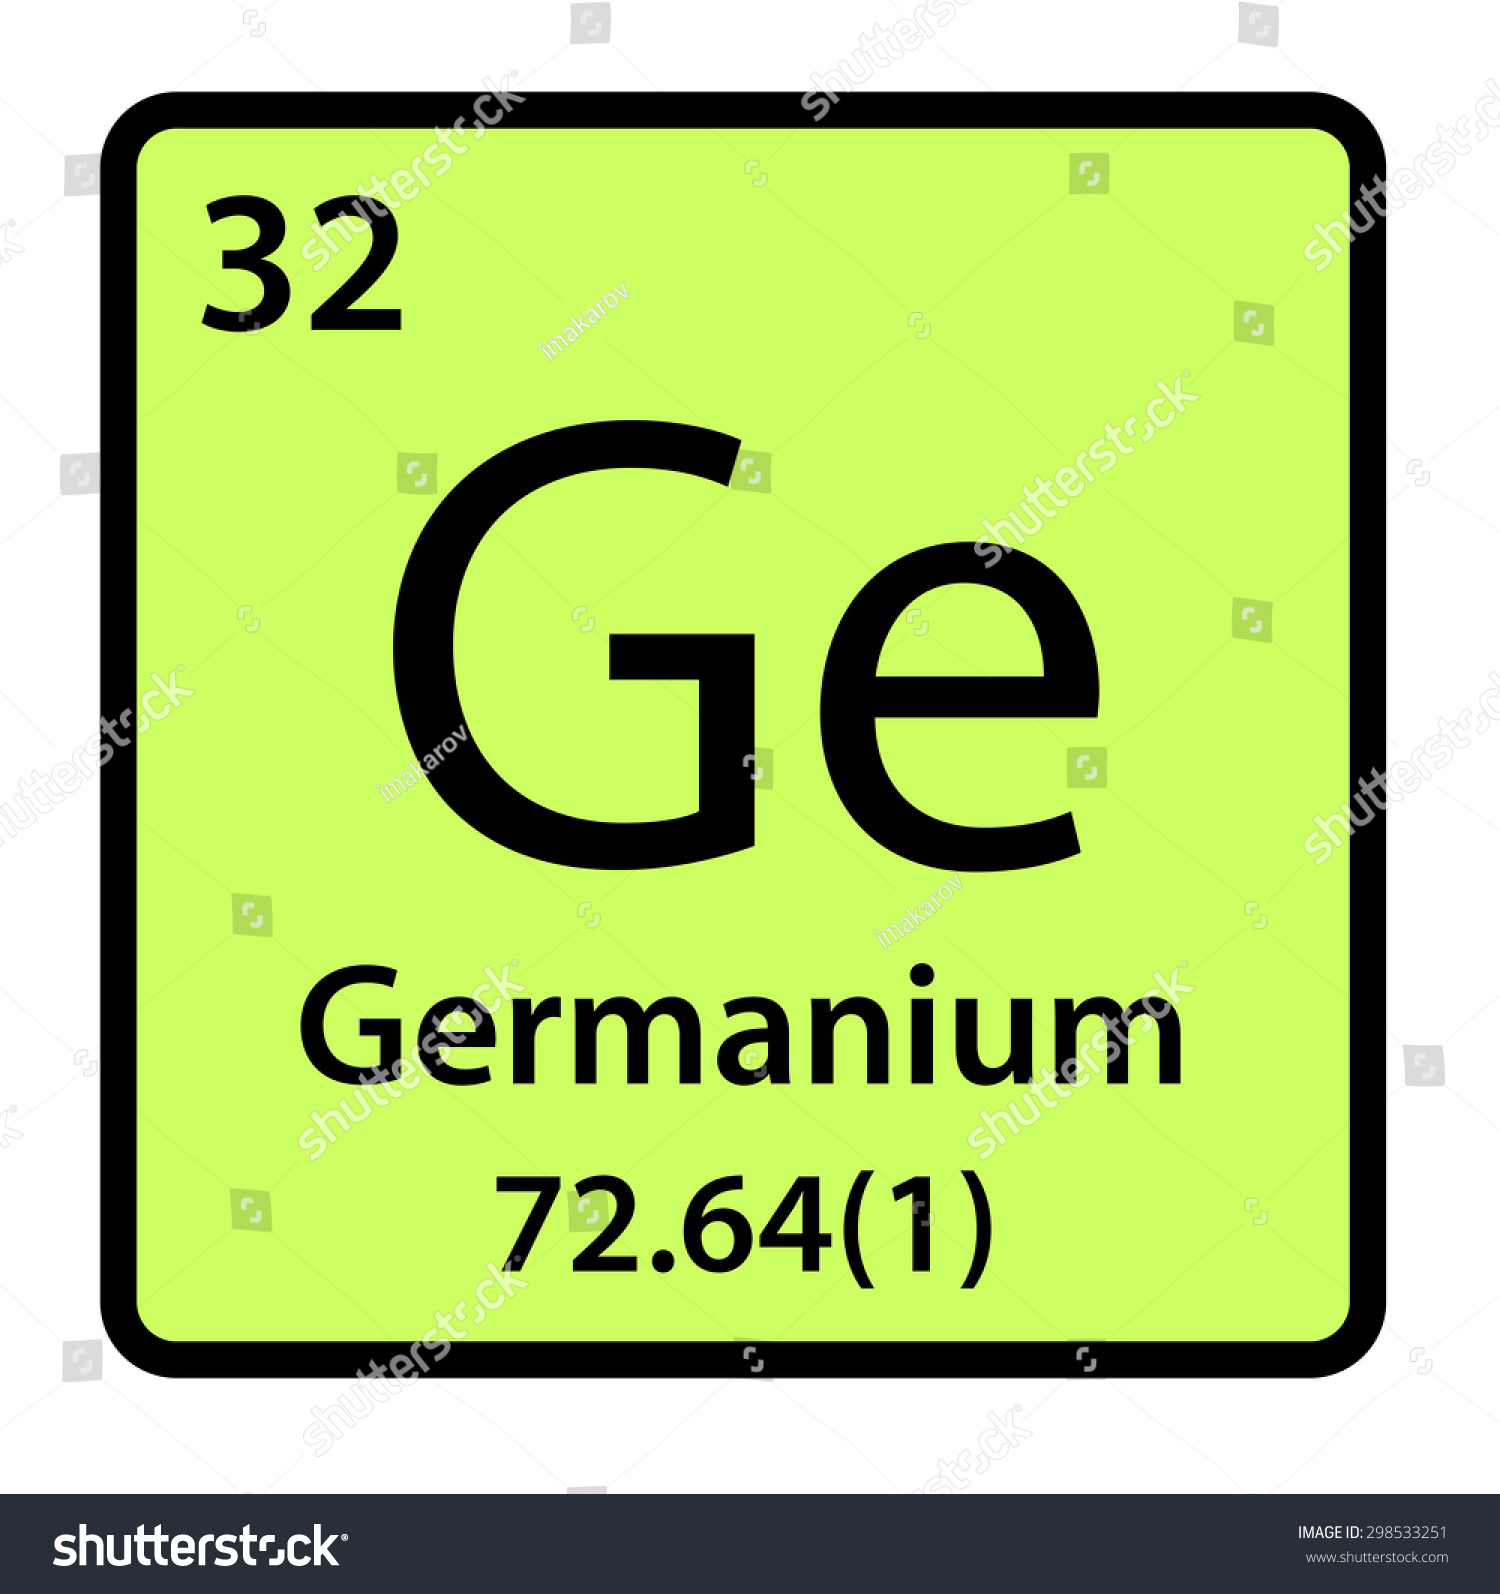 Element germanium periodic table stock illustration 298533251 element germanium of the periodic table gamestrikefo Image collections